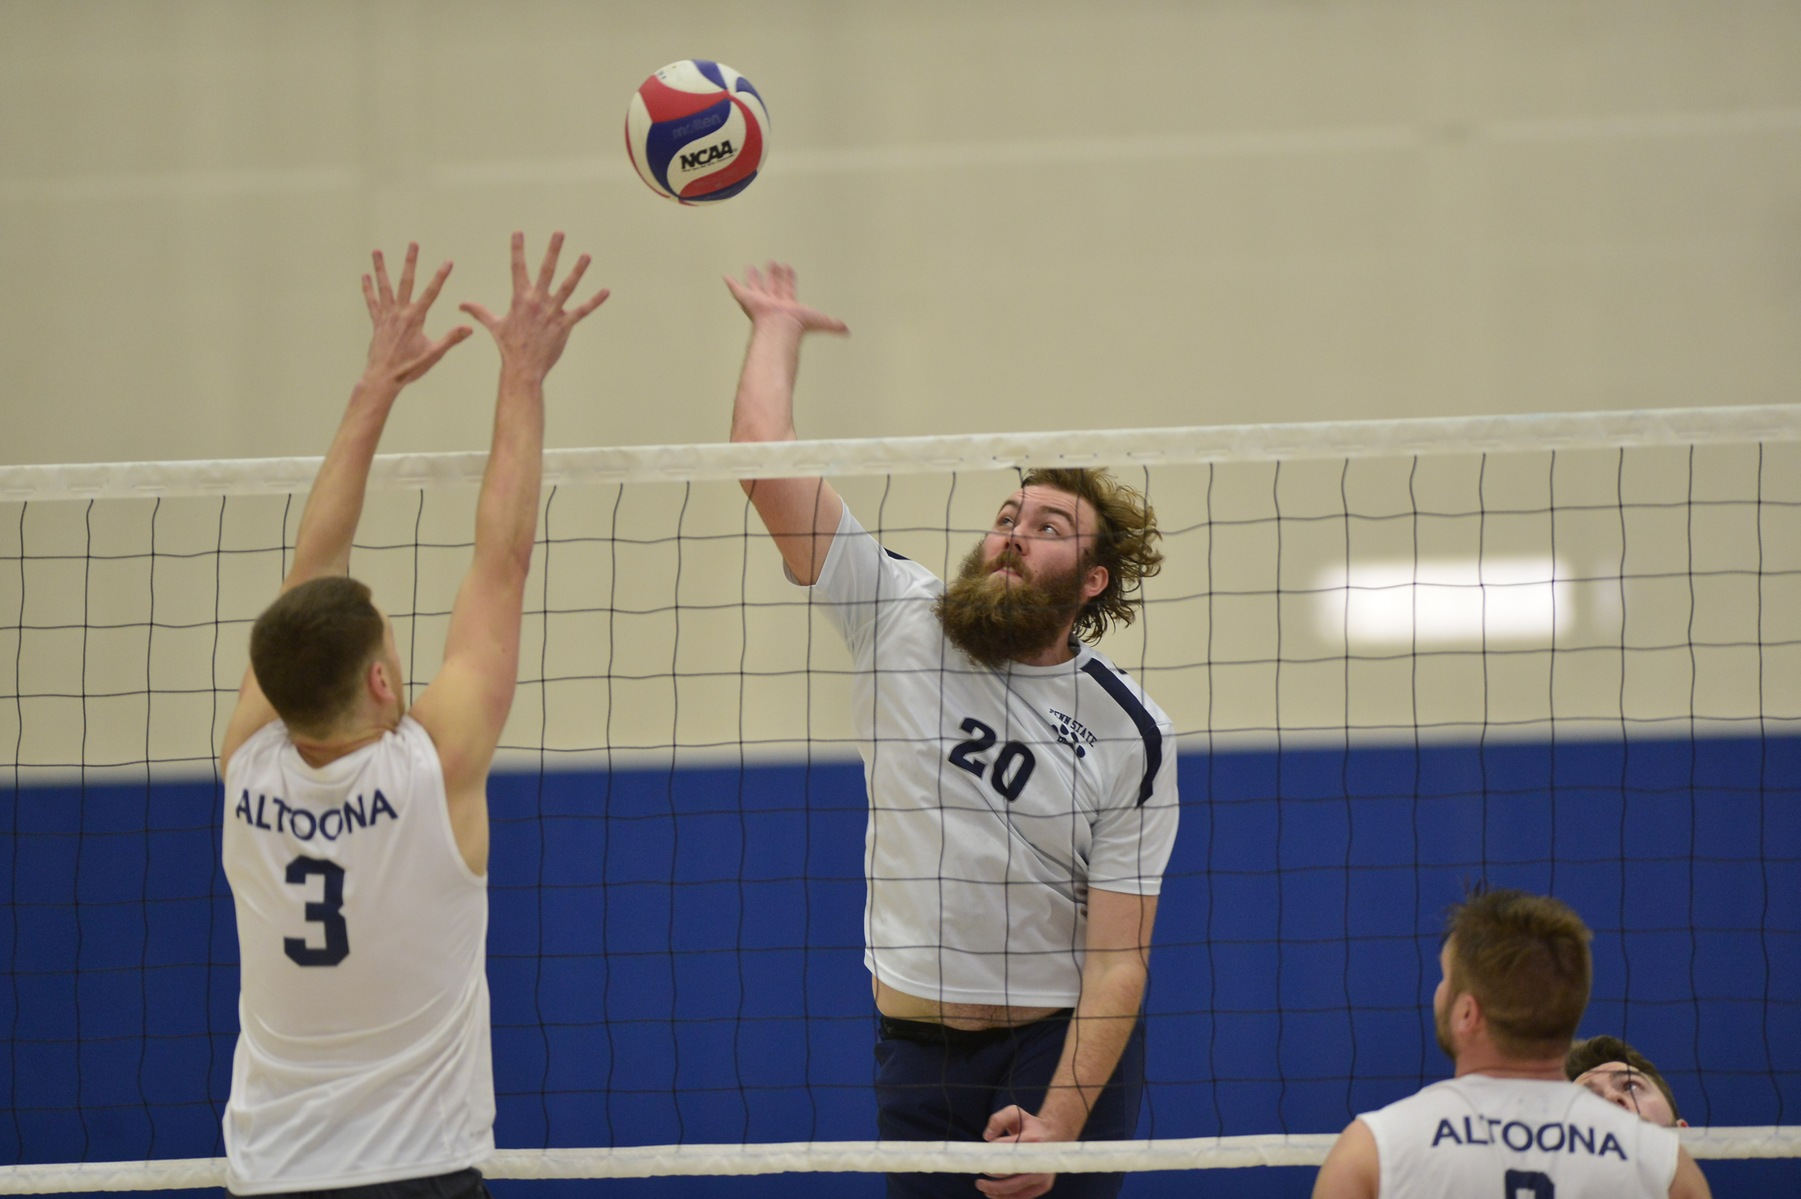 Medaille Edges Men's Volleyball in Five